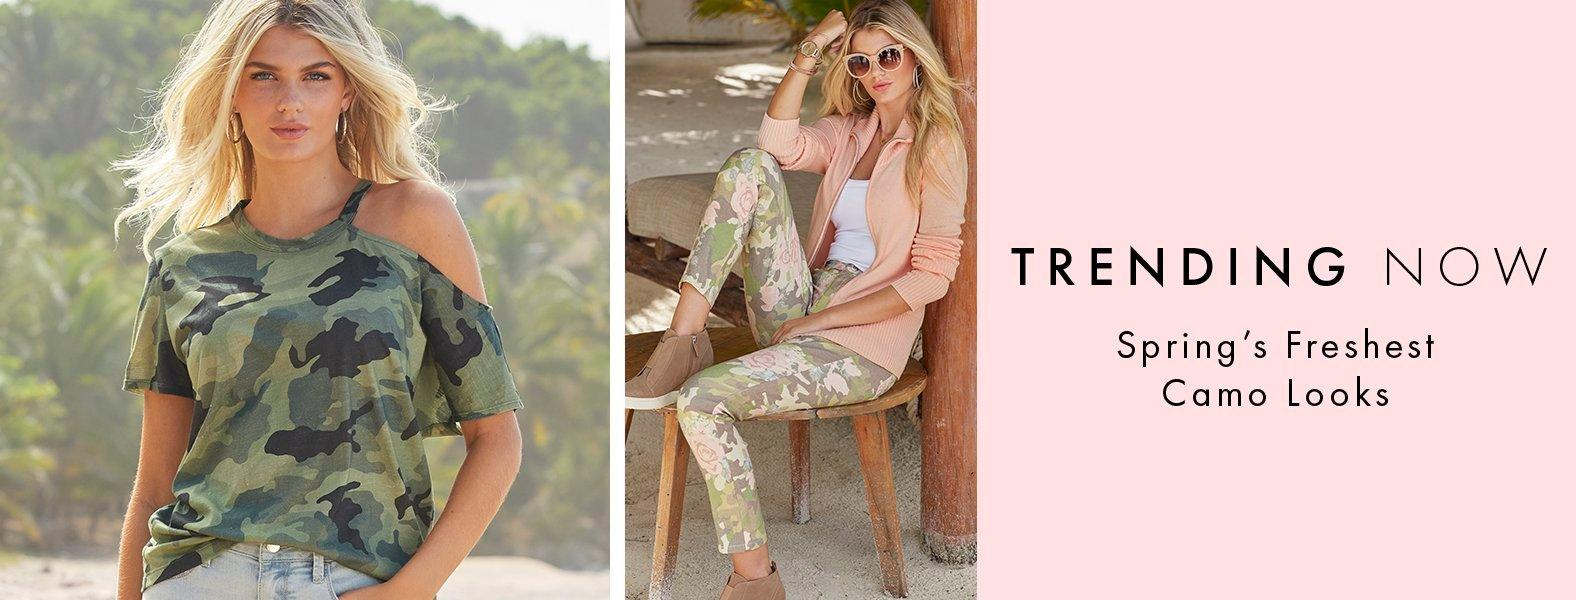 left model wearing a camo print off-the-shoulder top. right model wearing camo print pants, white tank top, and pink jacket.